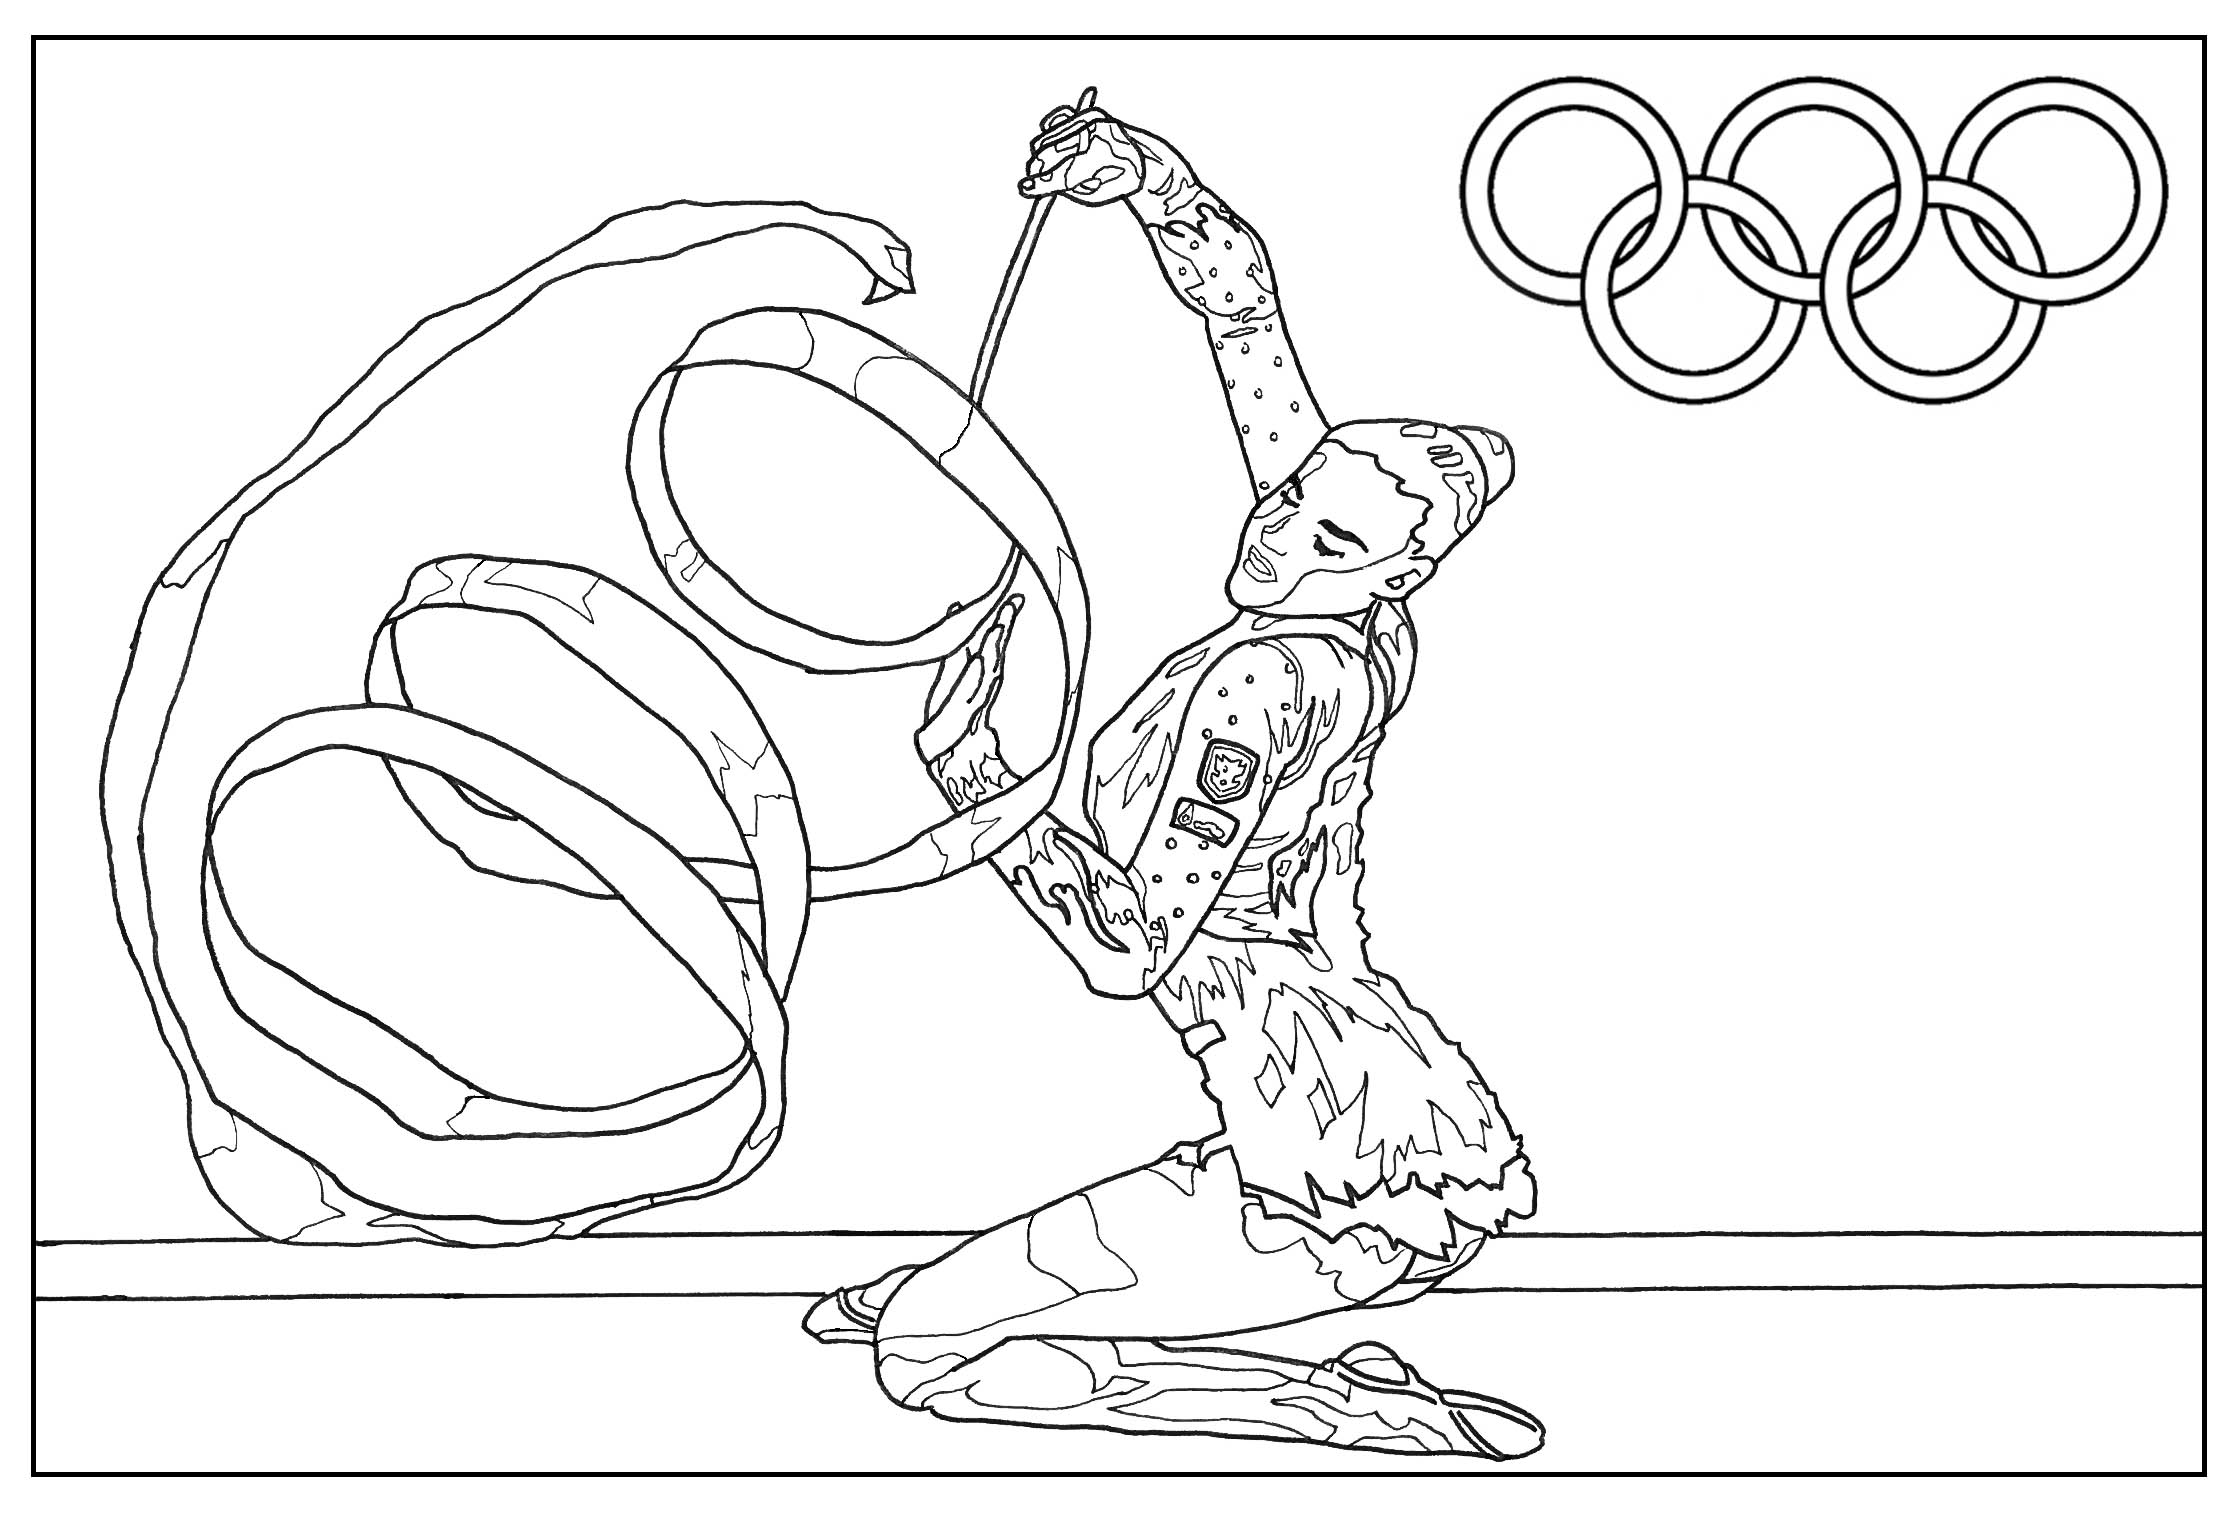 olympic colouring sheets olympic games to print for free olympic games kids colouring olympic sheets